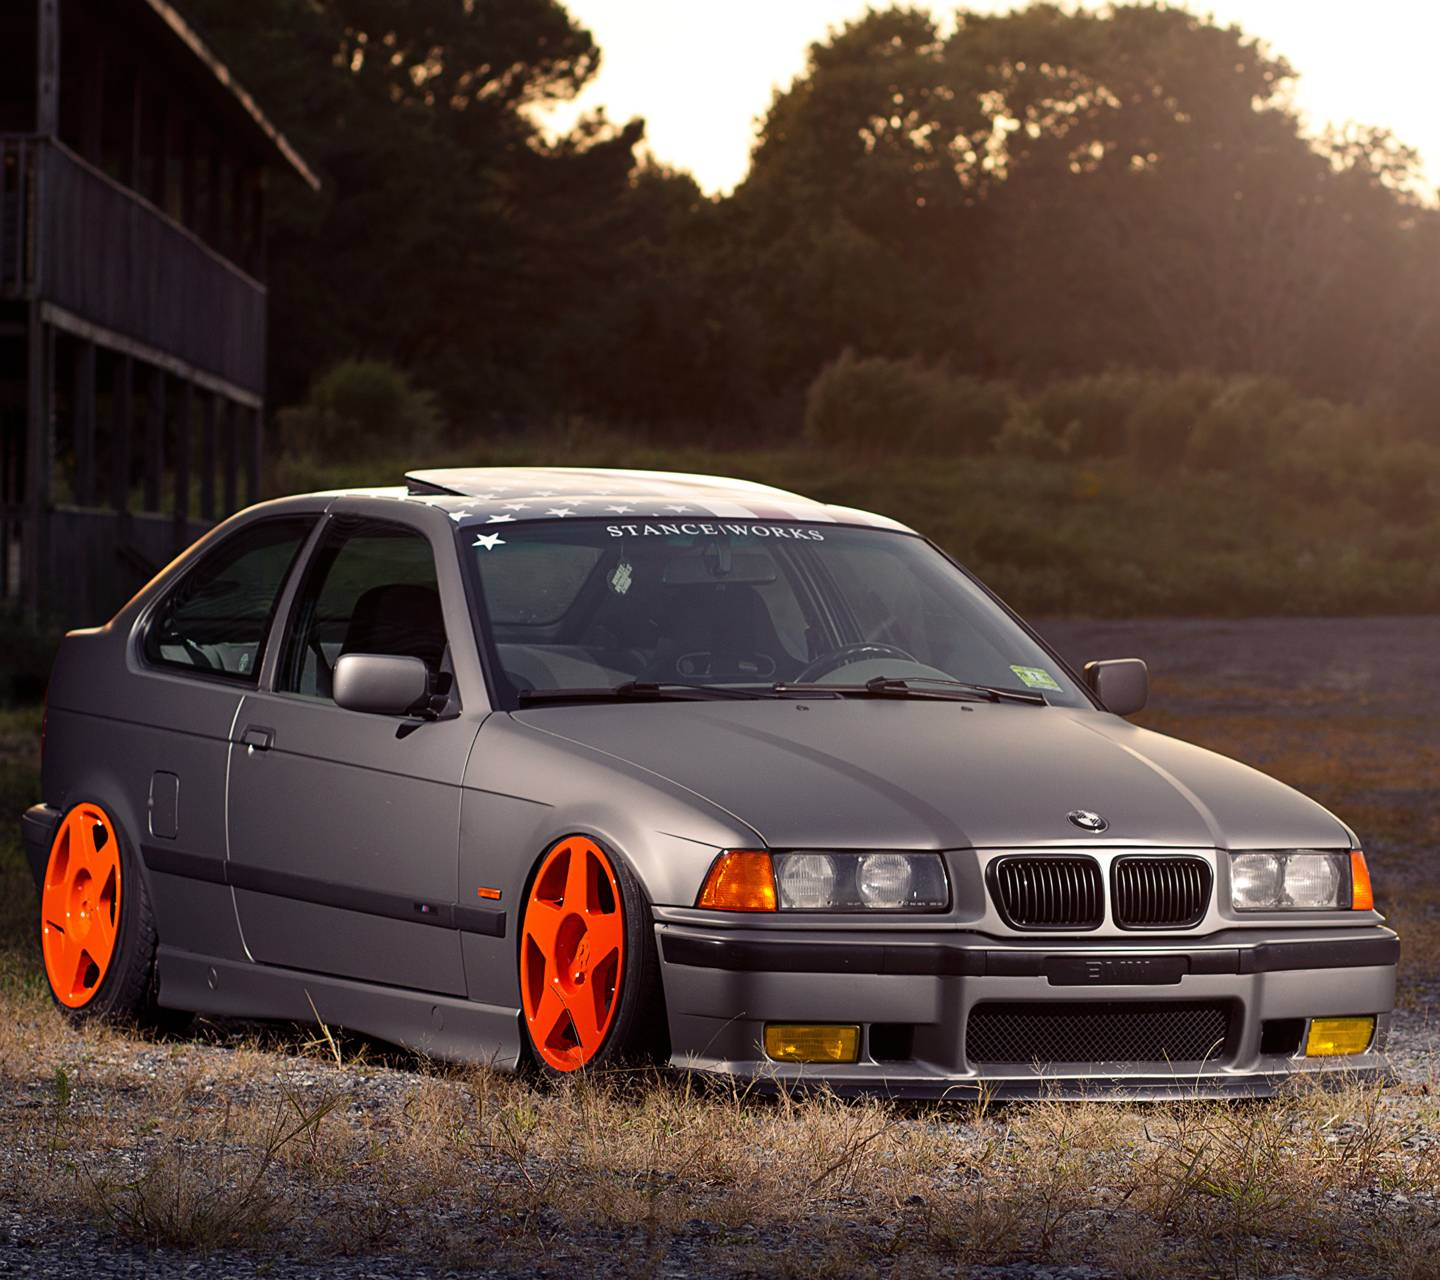 Bmw Wallpapers And Backgrounds: Bmw-e36-tuning Wallpaper By Evgrub